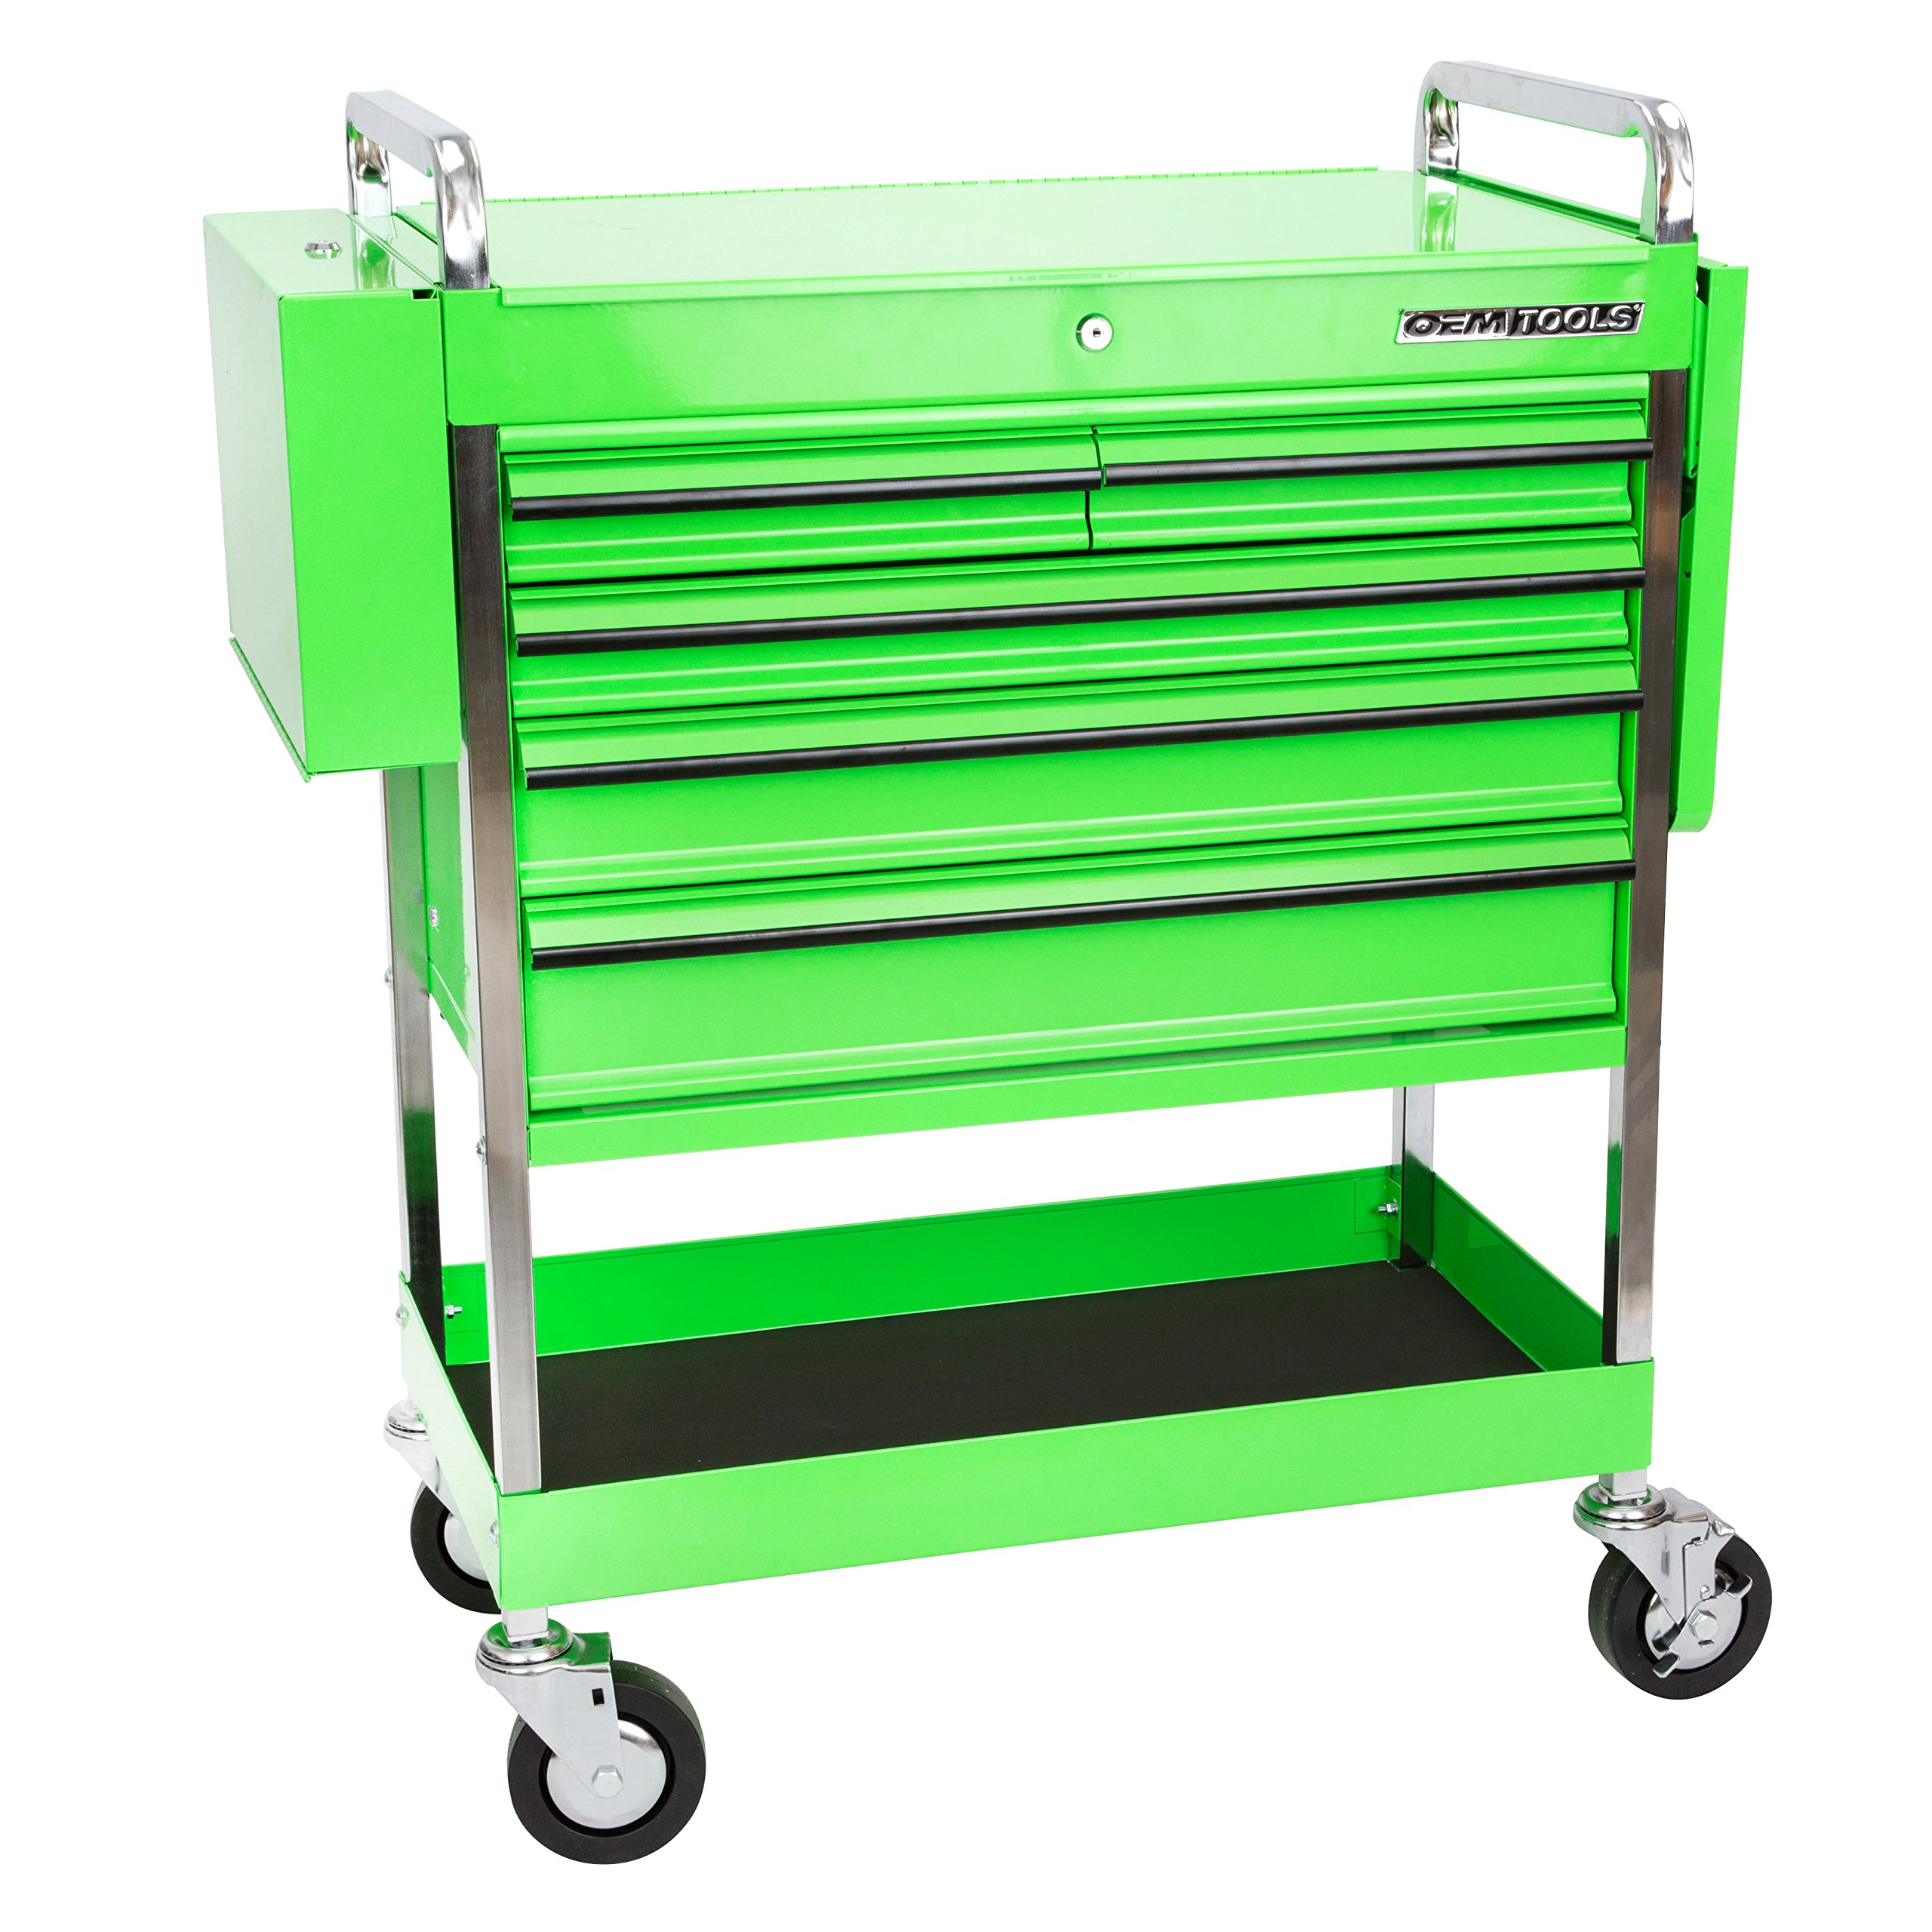 Professional Service Cart - 5 Drawer and 1 Tray (Green) by OEMTOOLS (Image #1)